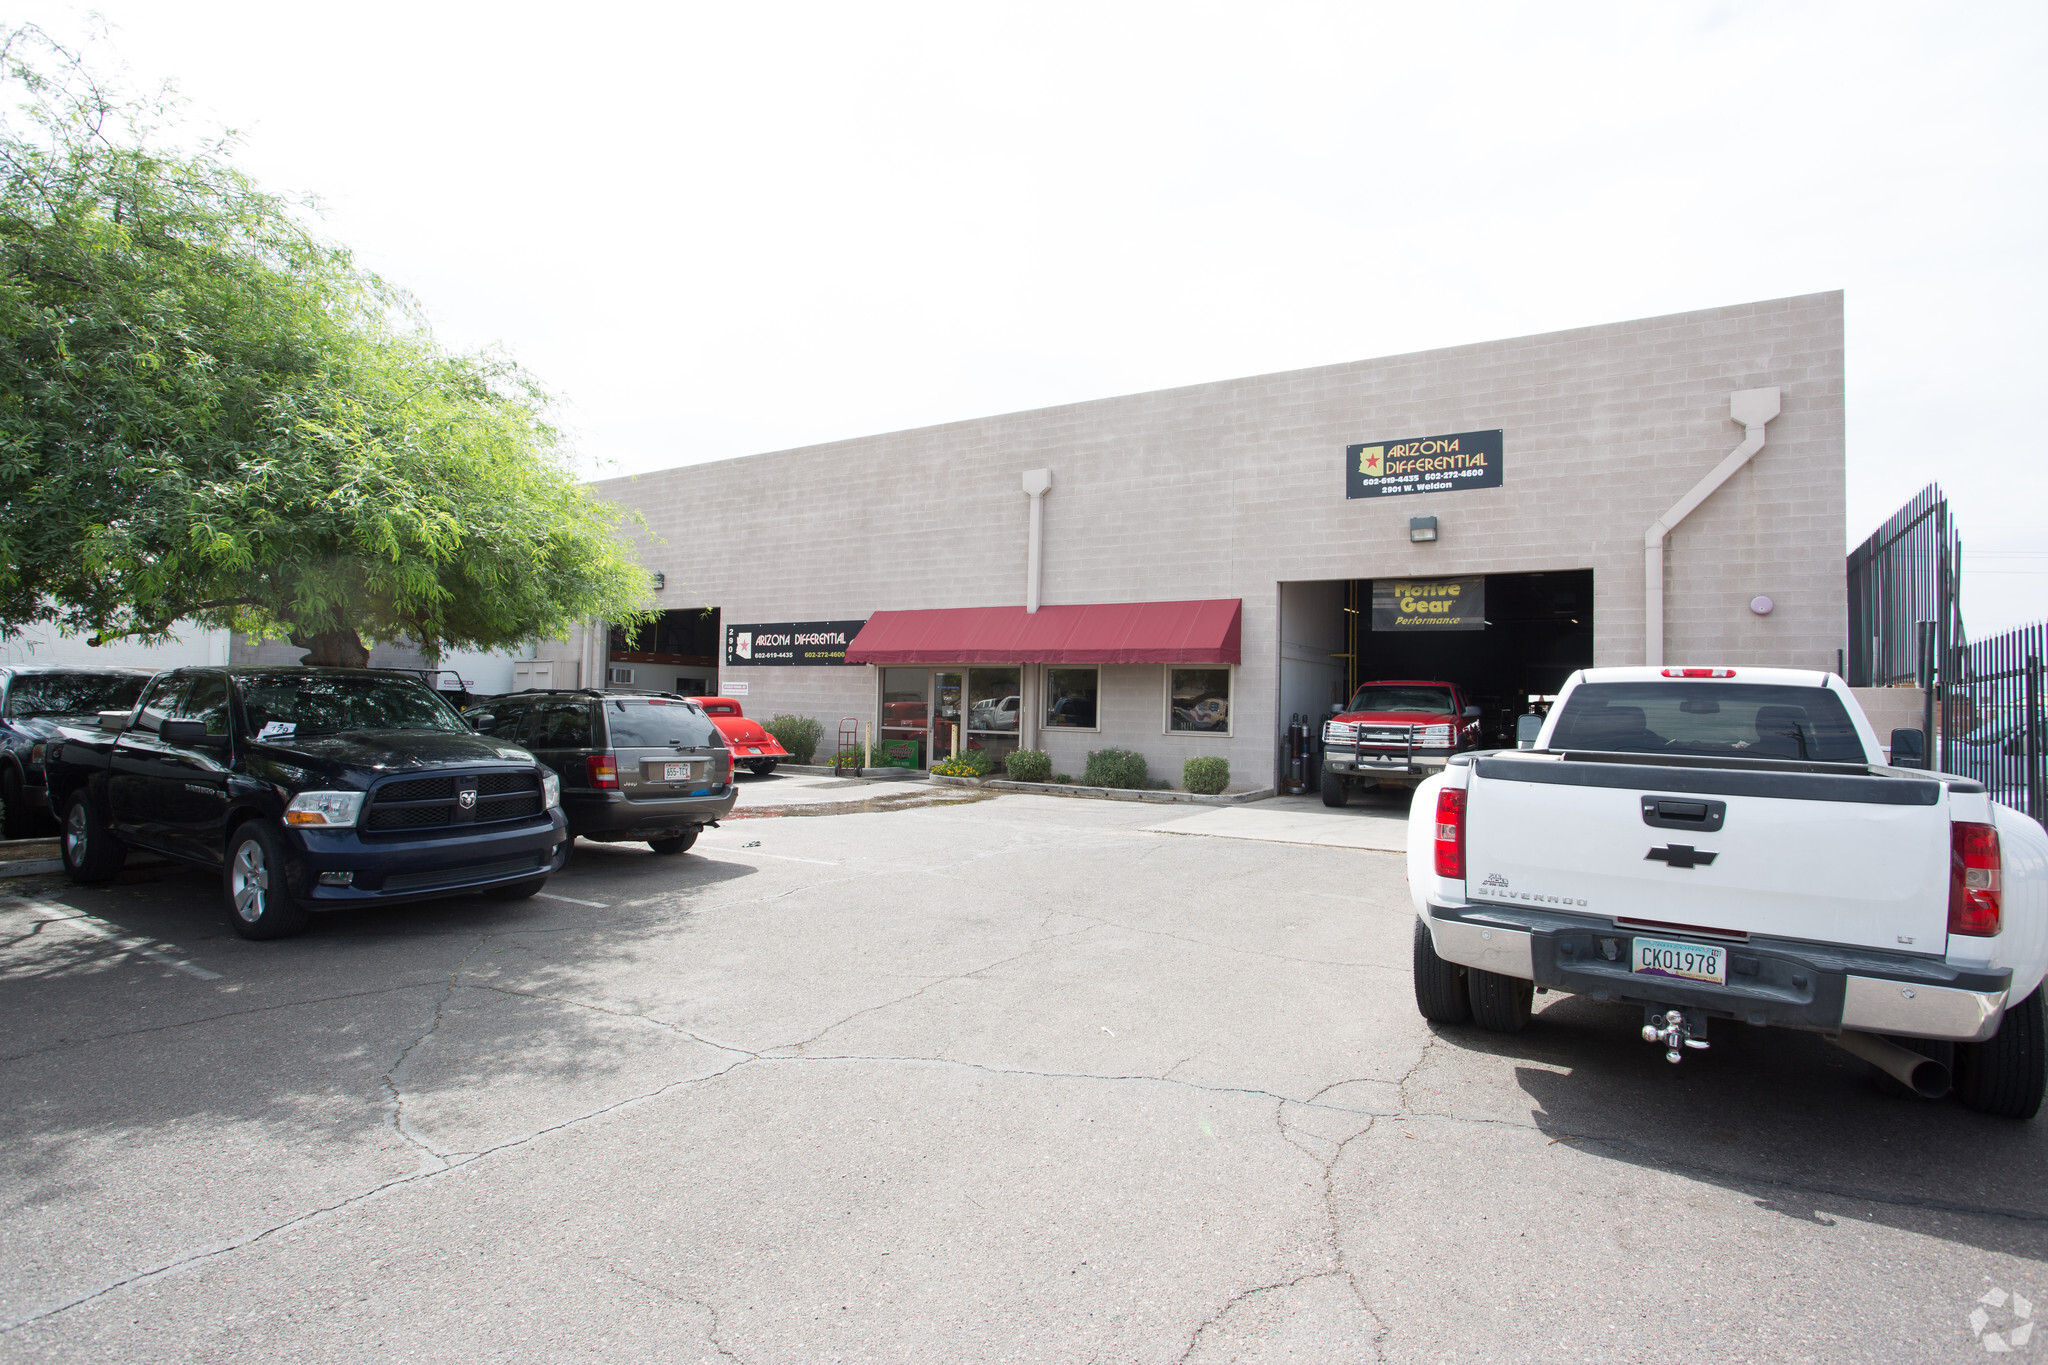 2901 W Weldon Ave, Phoenix AZ 85017 Industrial Building